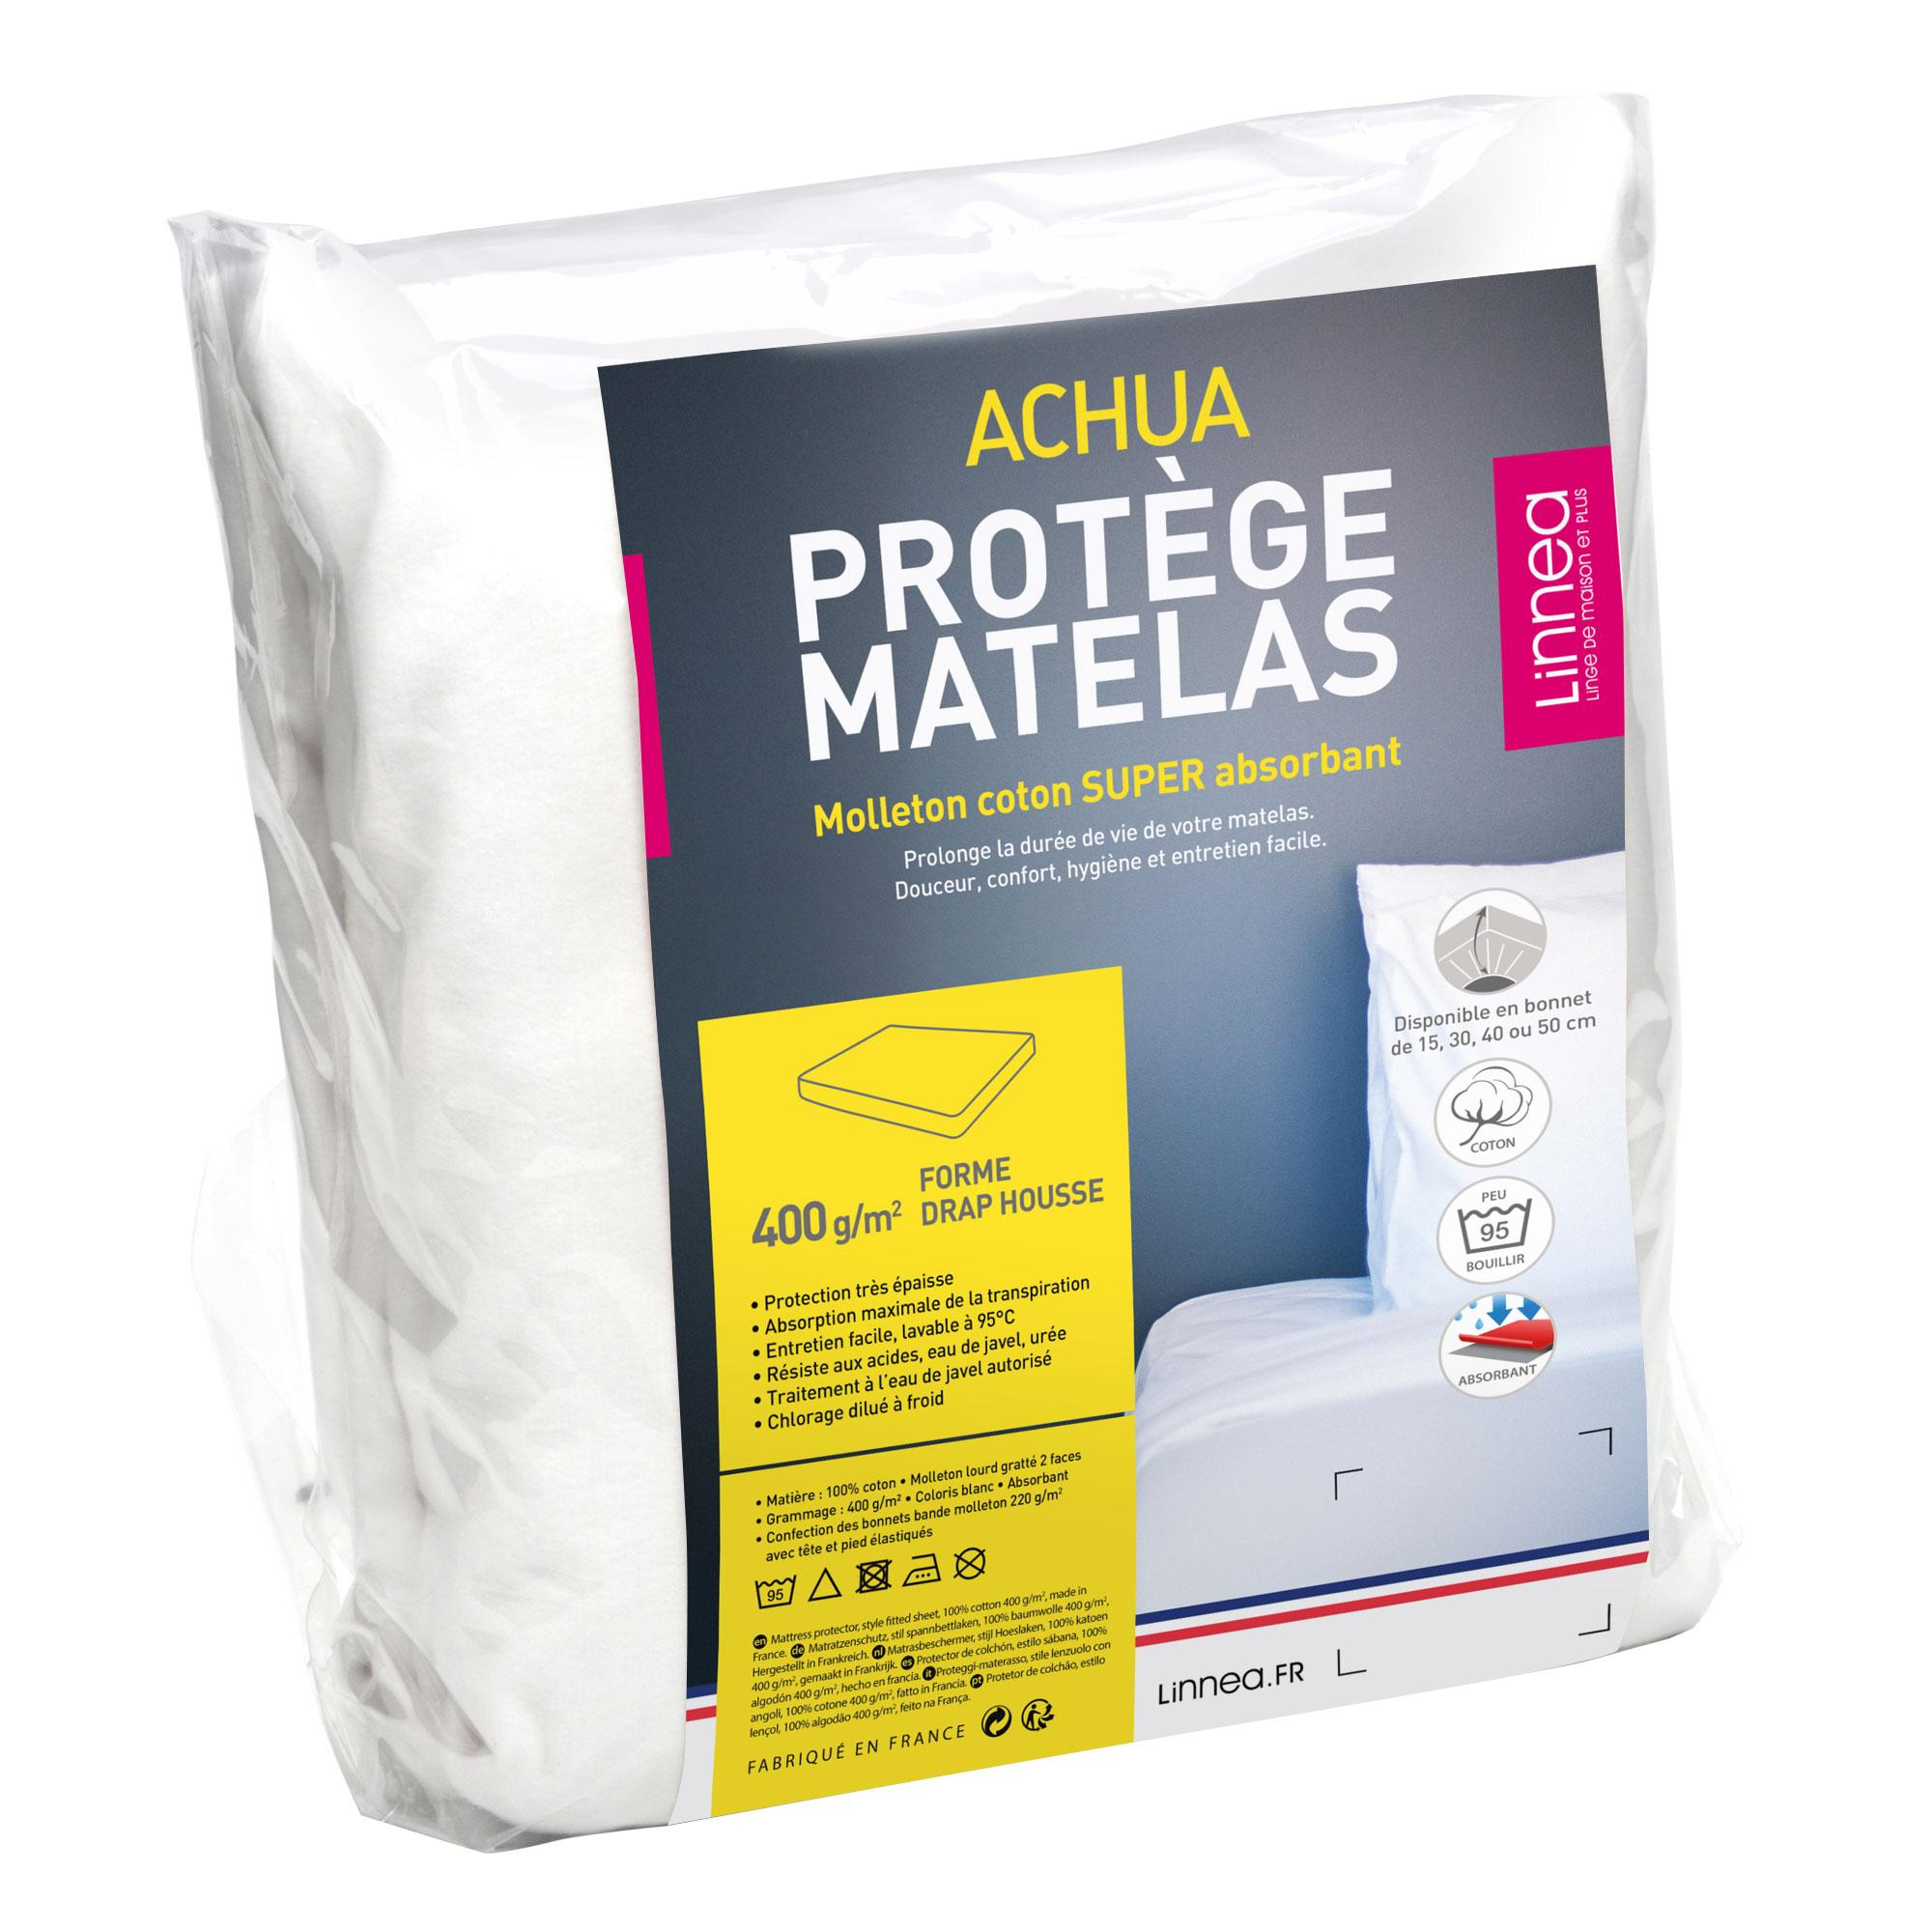 prot ge matelas 90x200 cm achua molleton 100 coton 400 g m2 bonnet 30cm linnea vente de. Black Bedroom Furniture Sets. Home Design Ideas